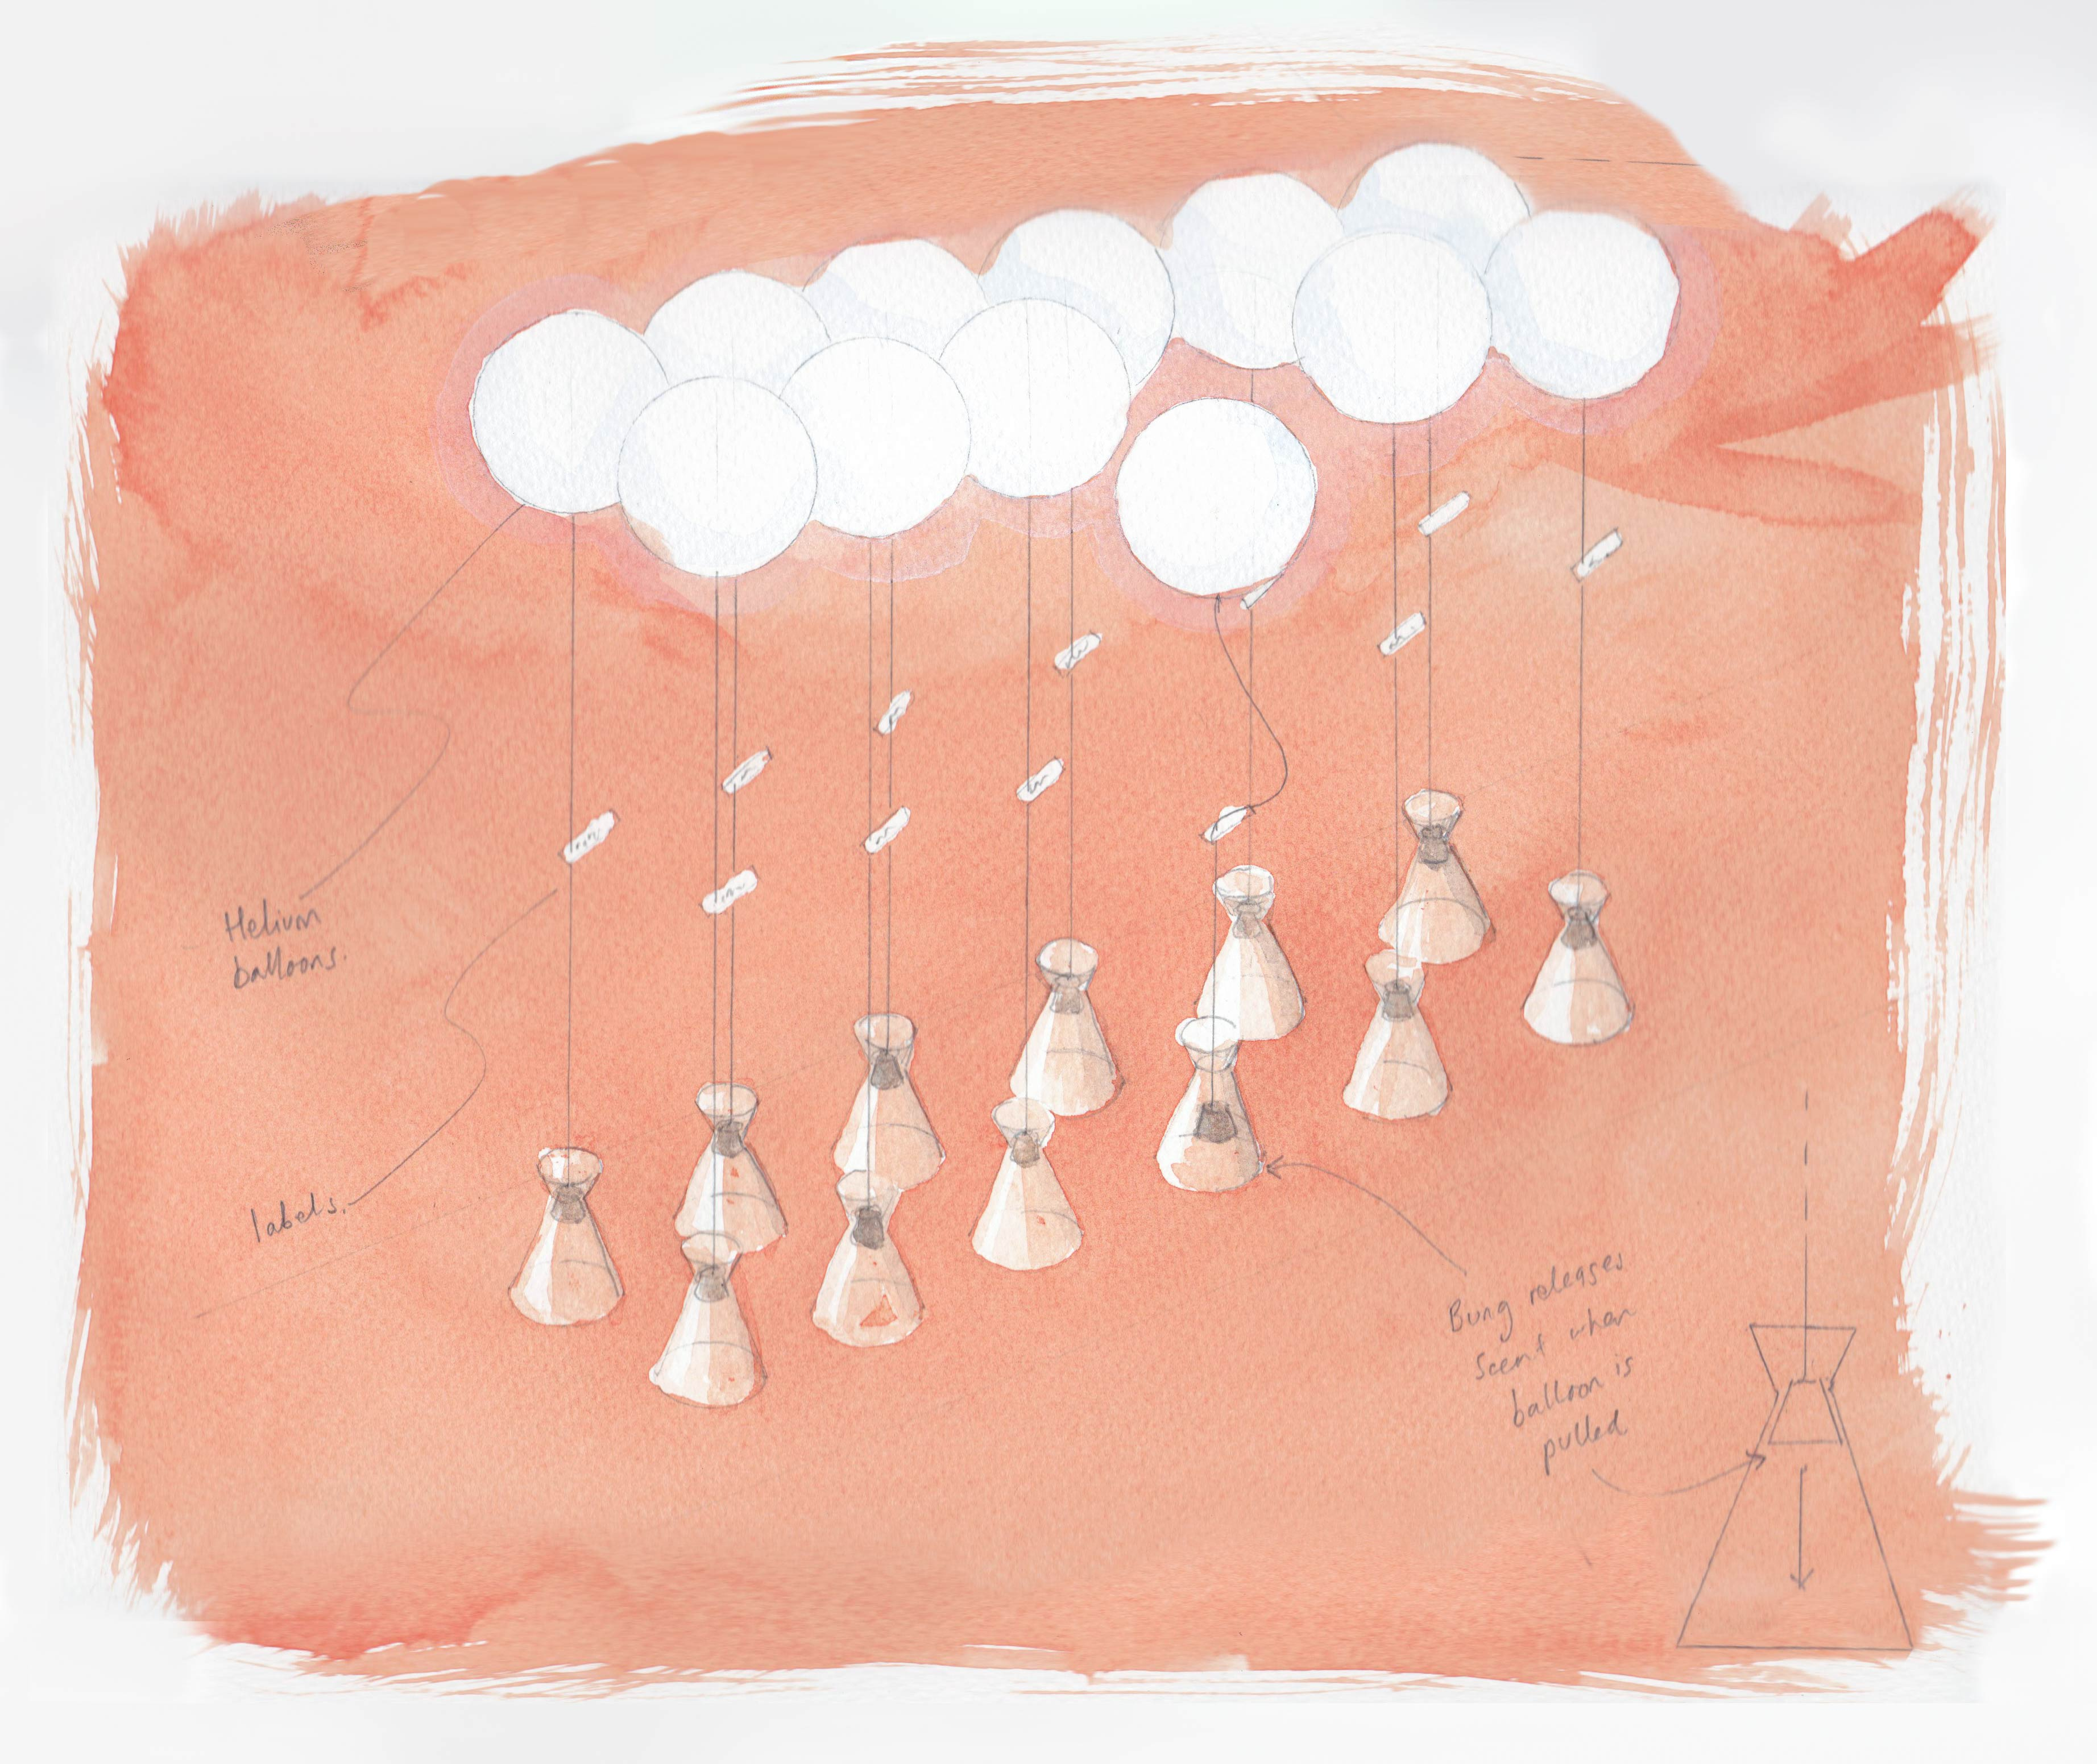 A water colour sketch of a design for a perfume bottle closure using balloons